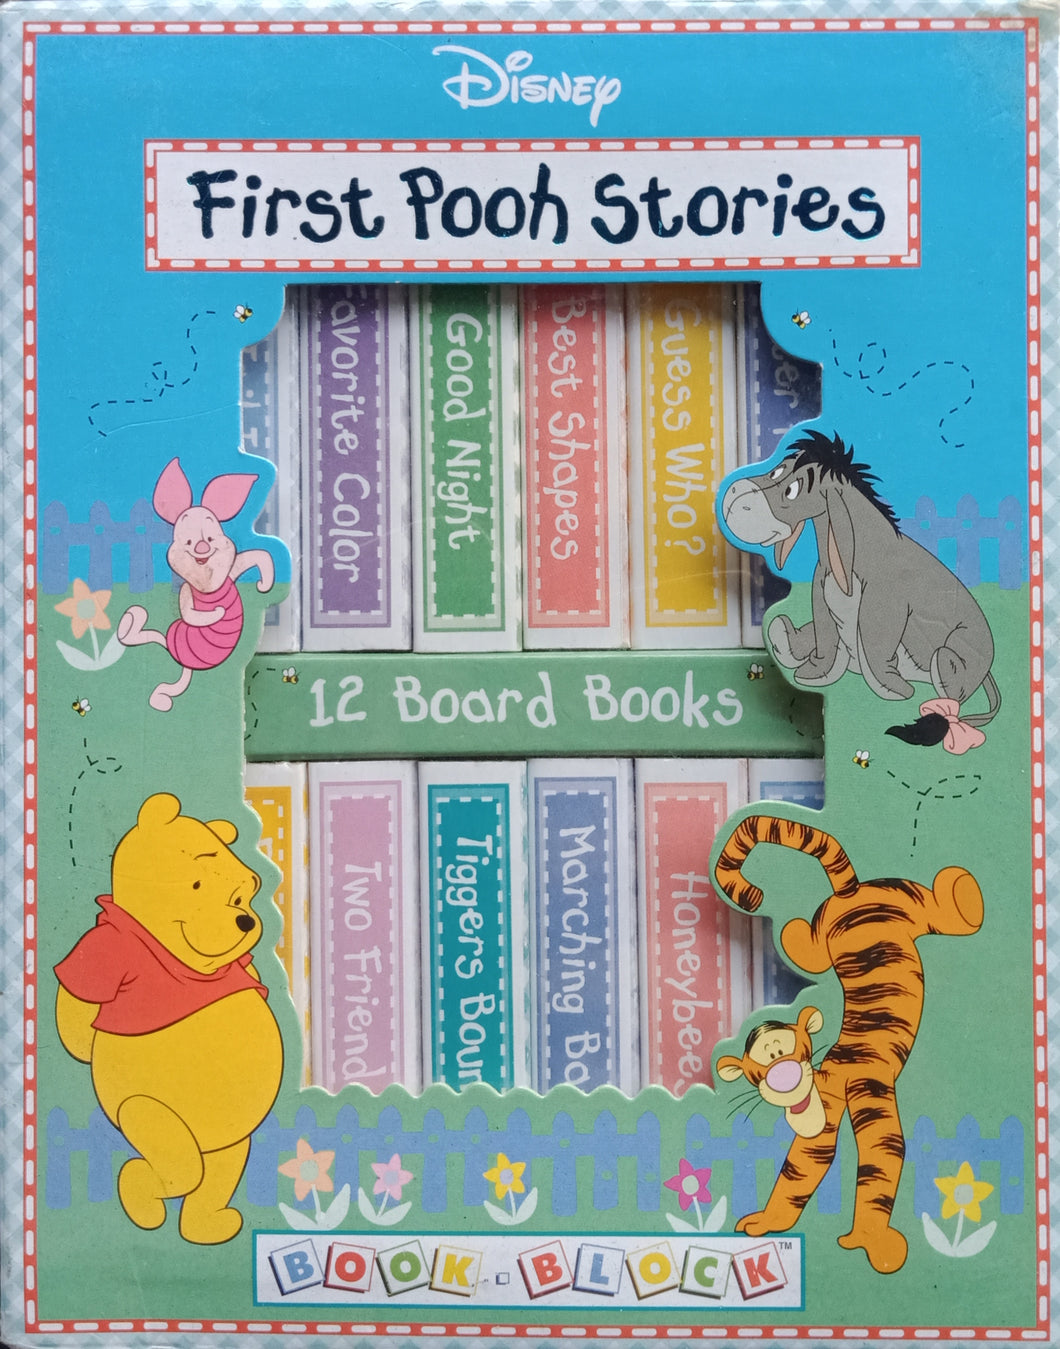 First Pooh Stories Book Block : Insidr You'll Find These 12 Charming Books